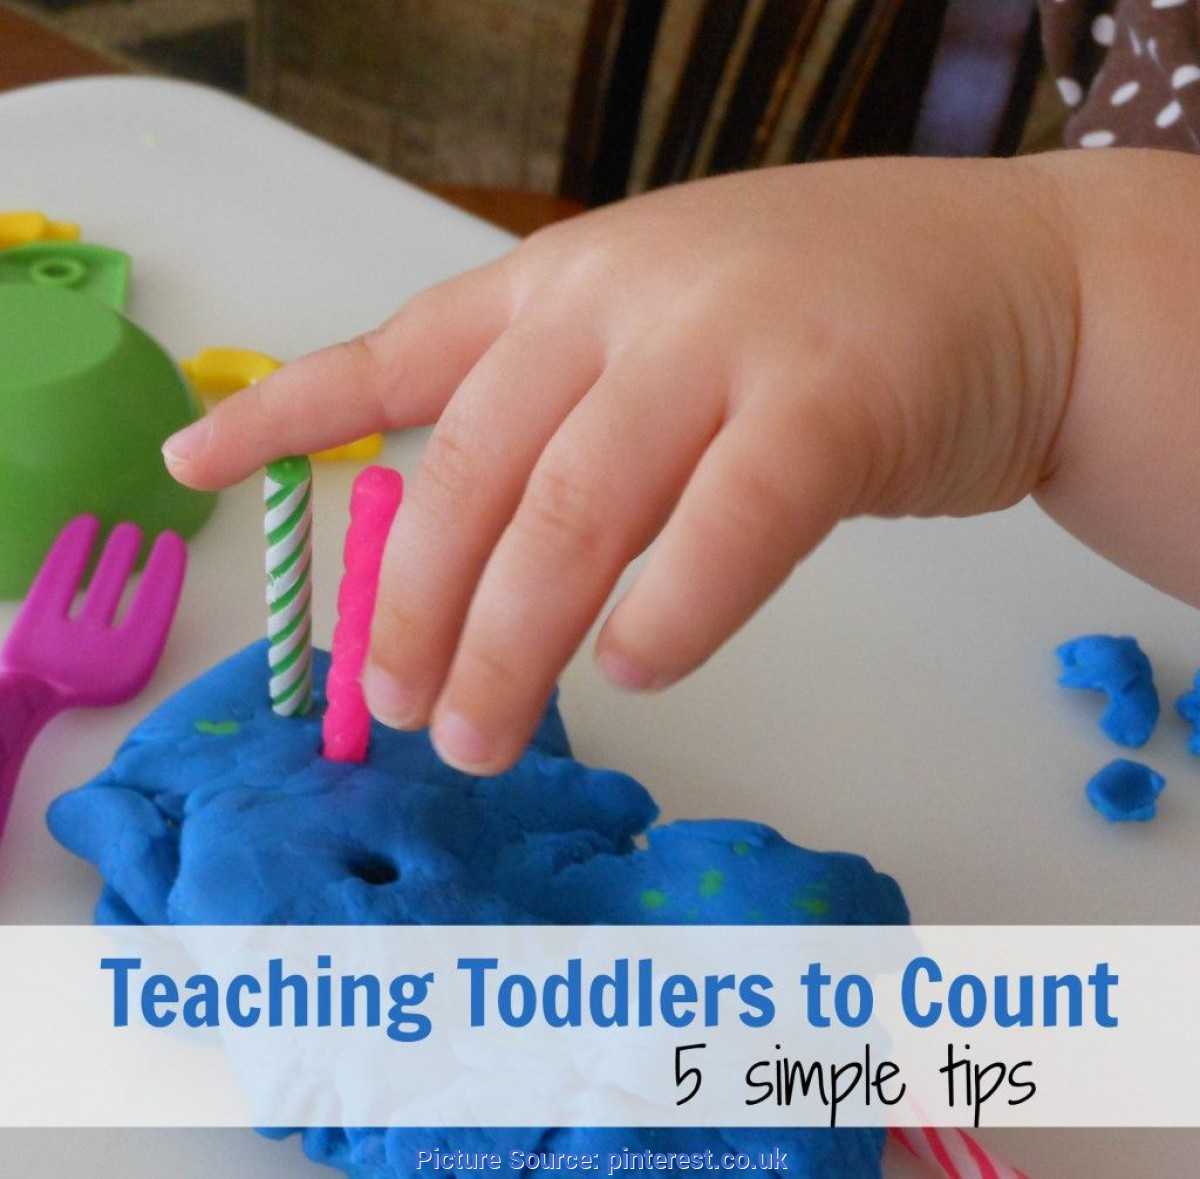 Simple Numeracy Activities For Toddlers Counting With Toddlers... 5 Simple Tips | Math Activities, Coun